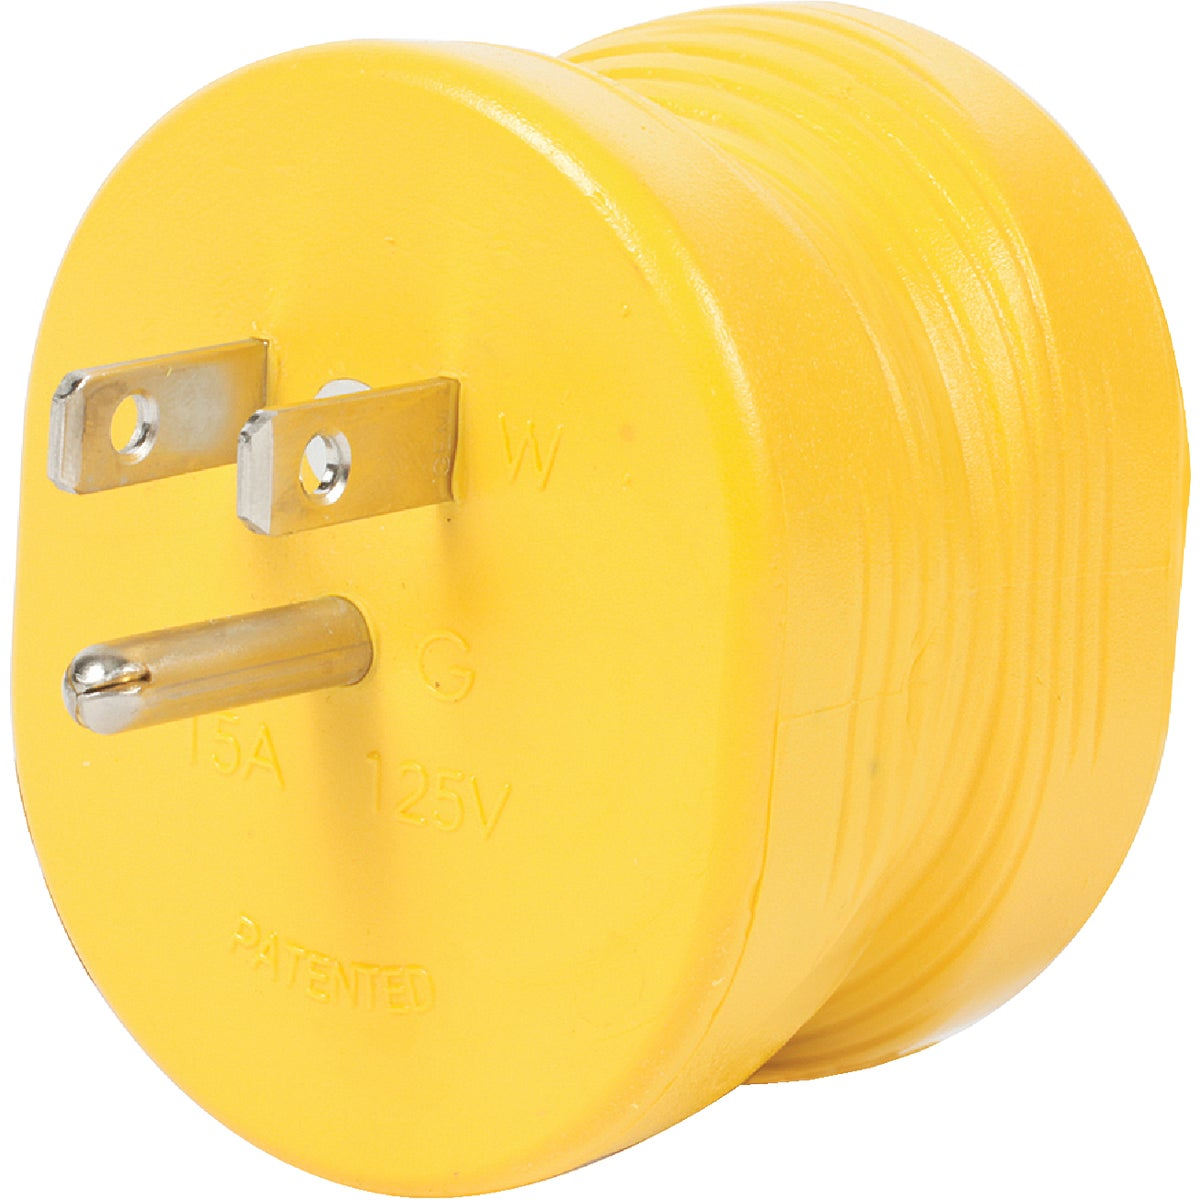 15M-30F ELECTRIC ADAPTER - 55223 by Camco Mfg.